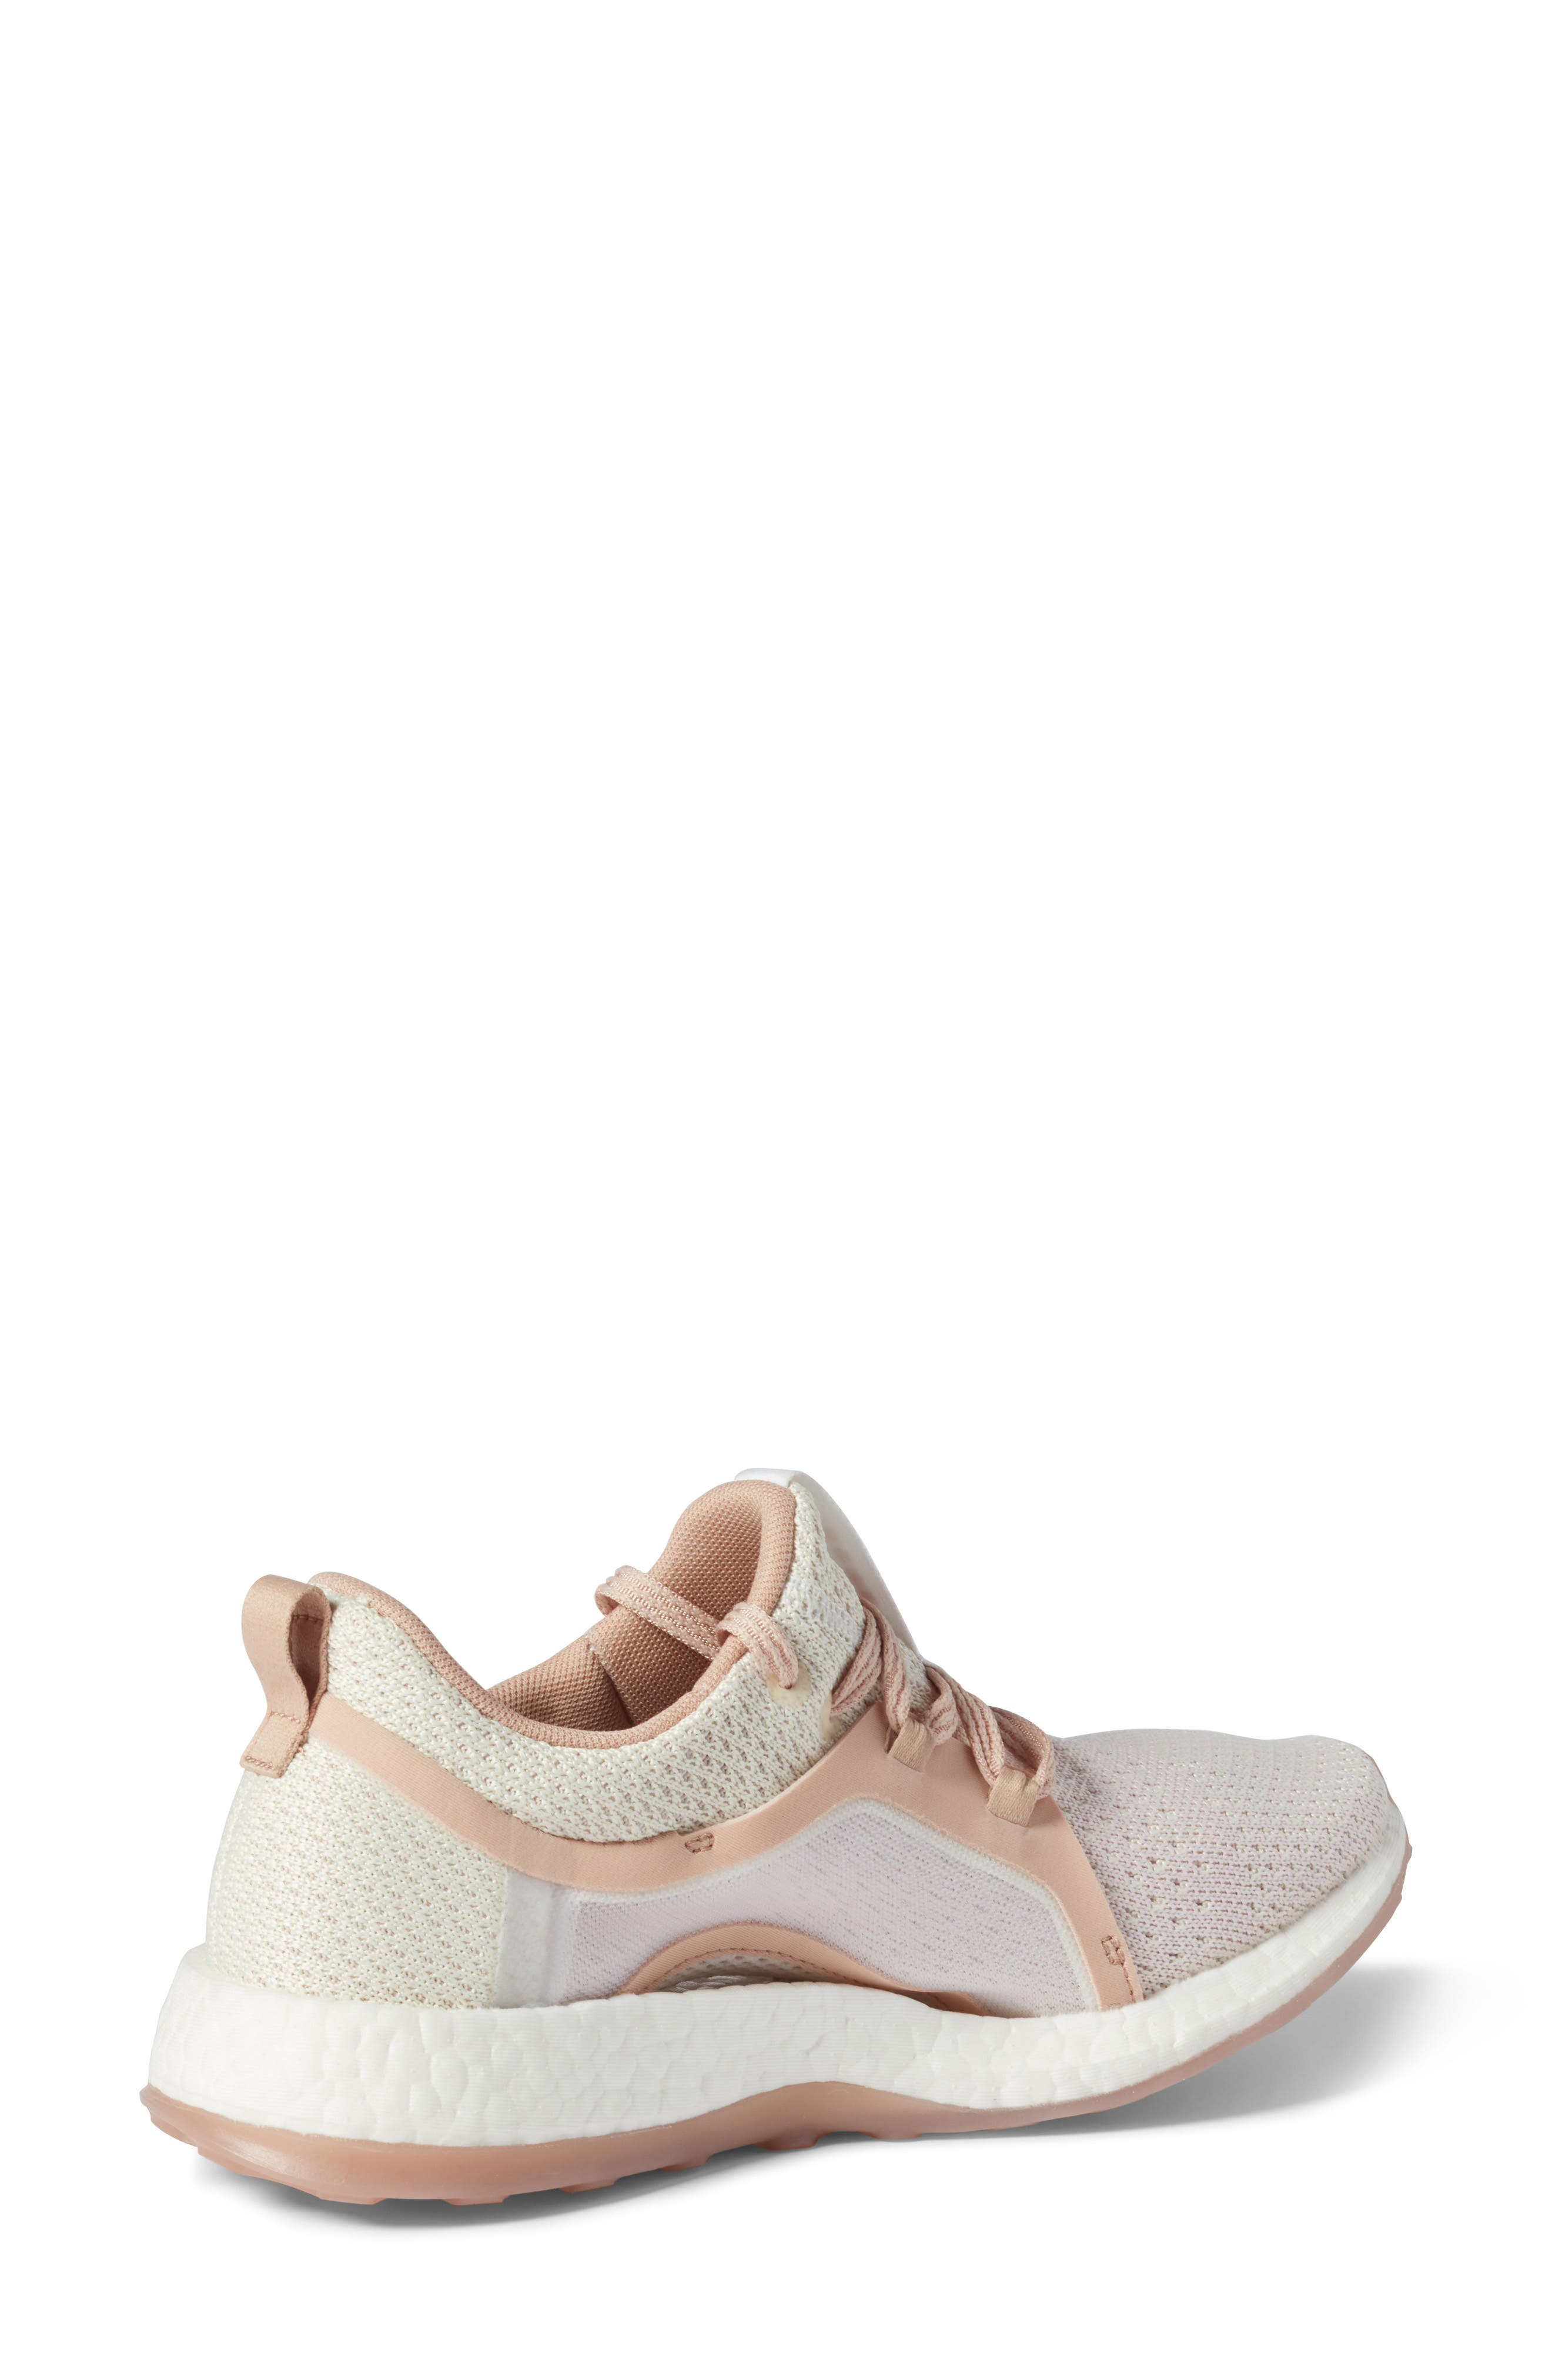 Pureboost X Clima Sneaker,                             Alternate thumbnail 6, color,